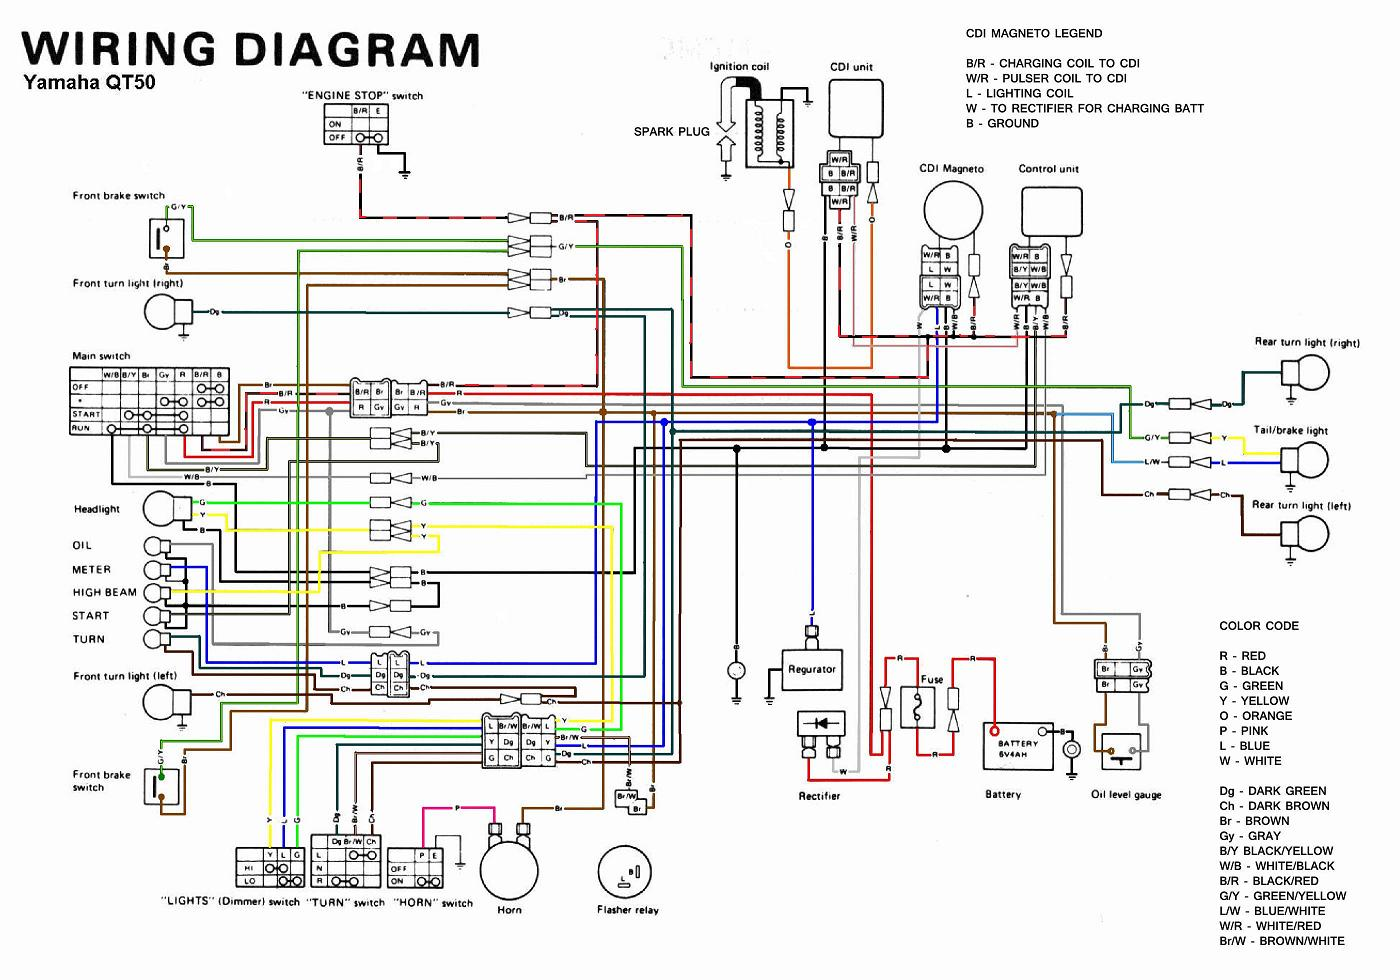 Yamaha QT50 Wiring Diagram yamaha qt50 wiring diagram yamaha qt50 luvin and other nopeds 1986 yamaha moto 4 200 wiring schematic at bayanpartner.co